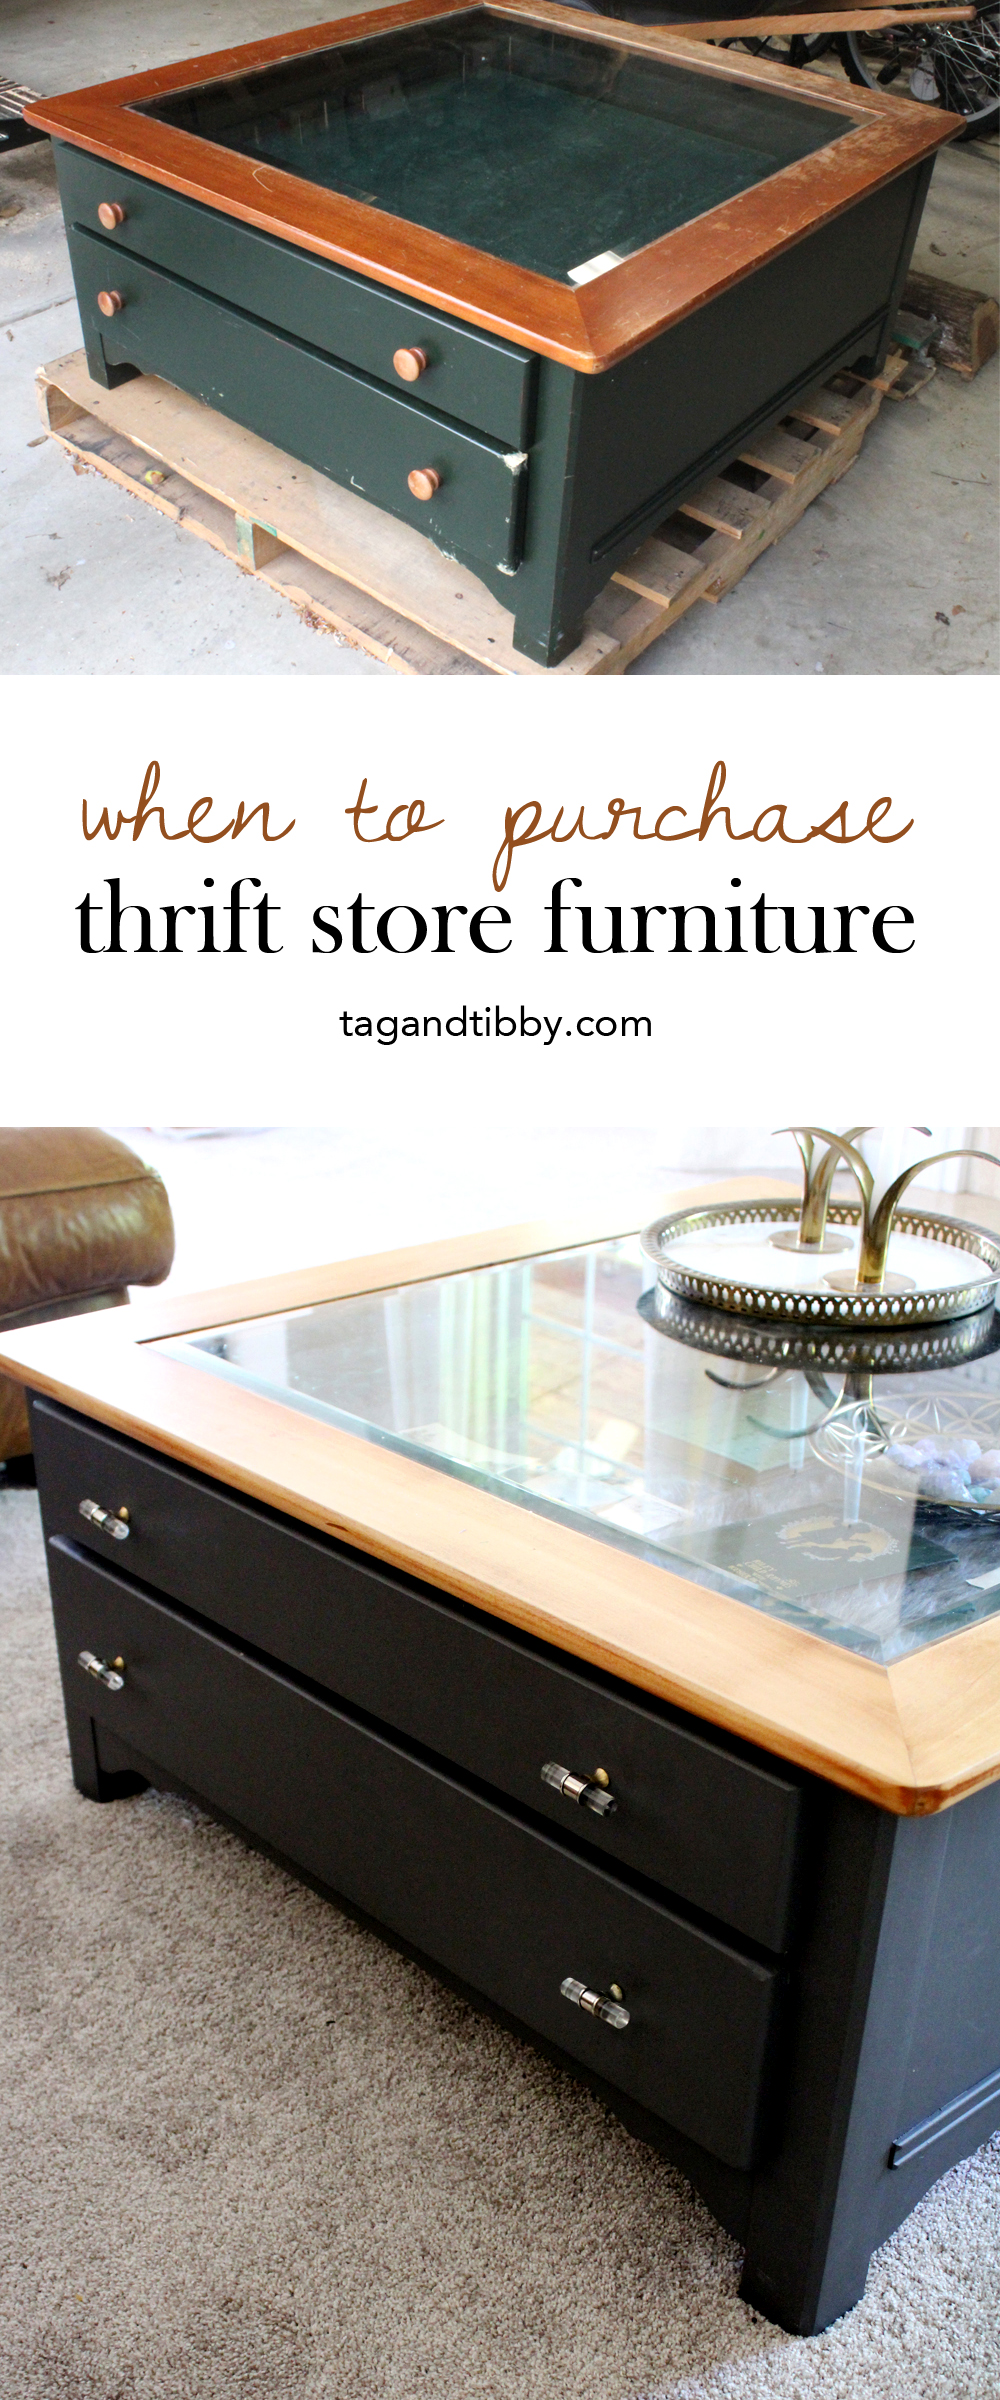 4 Questions You Should Always Ask Before Purchasing Used Furniture